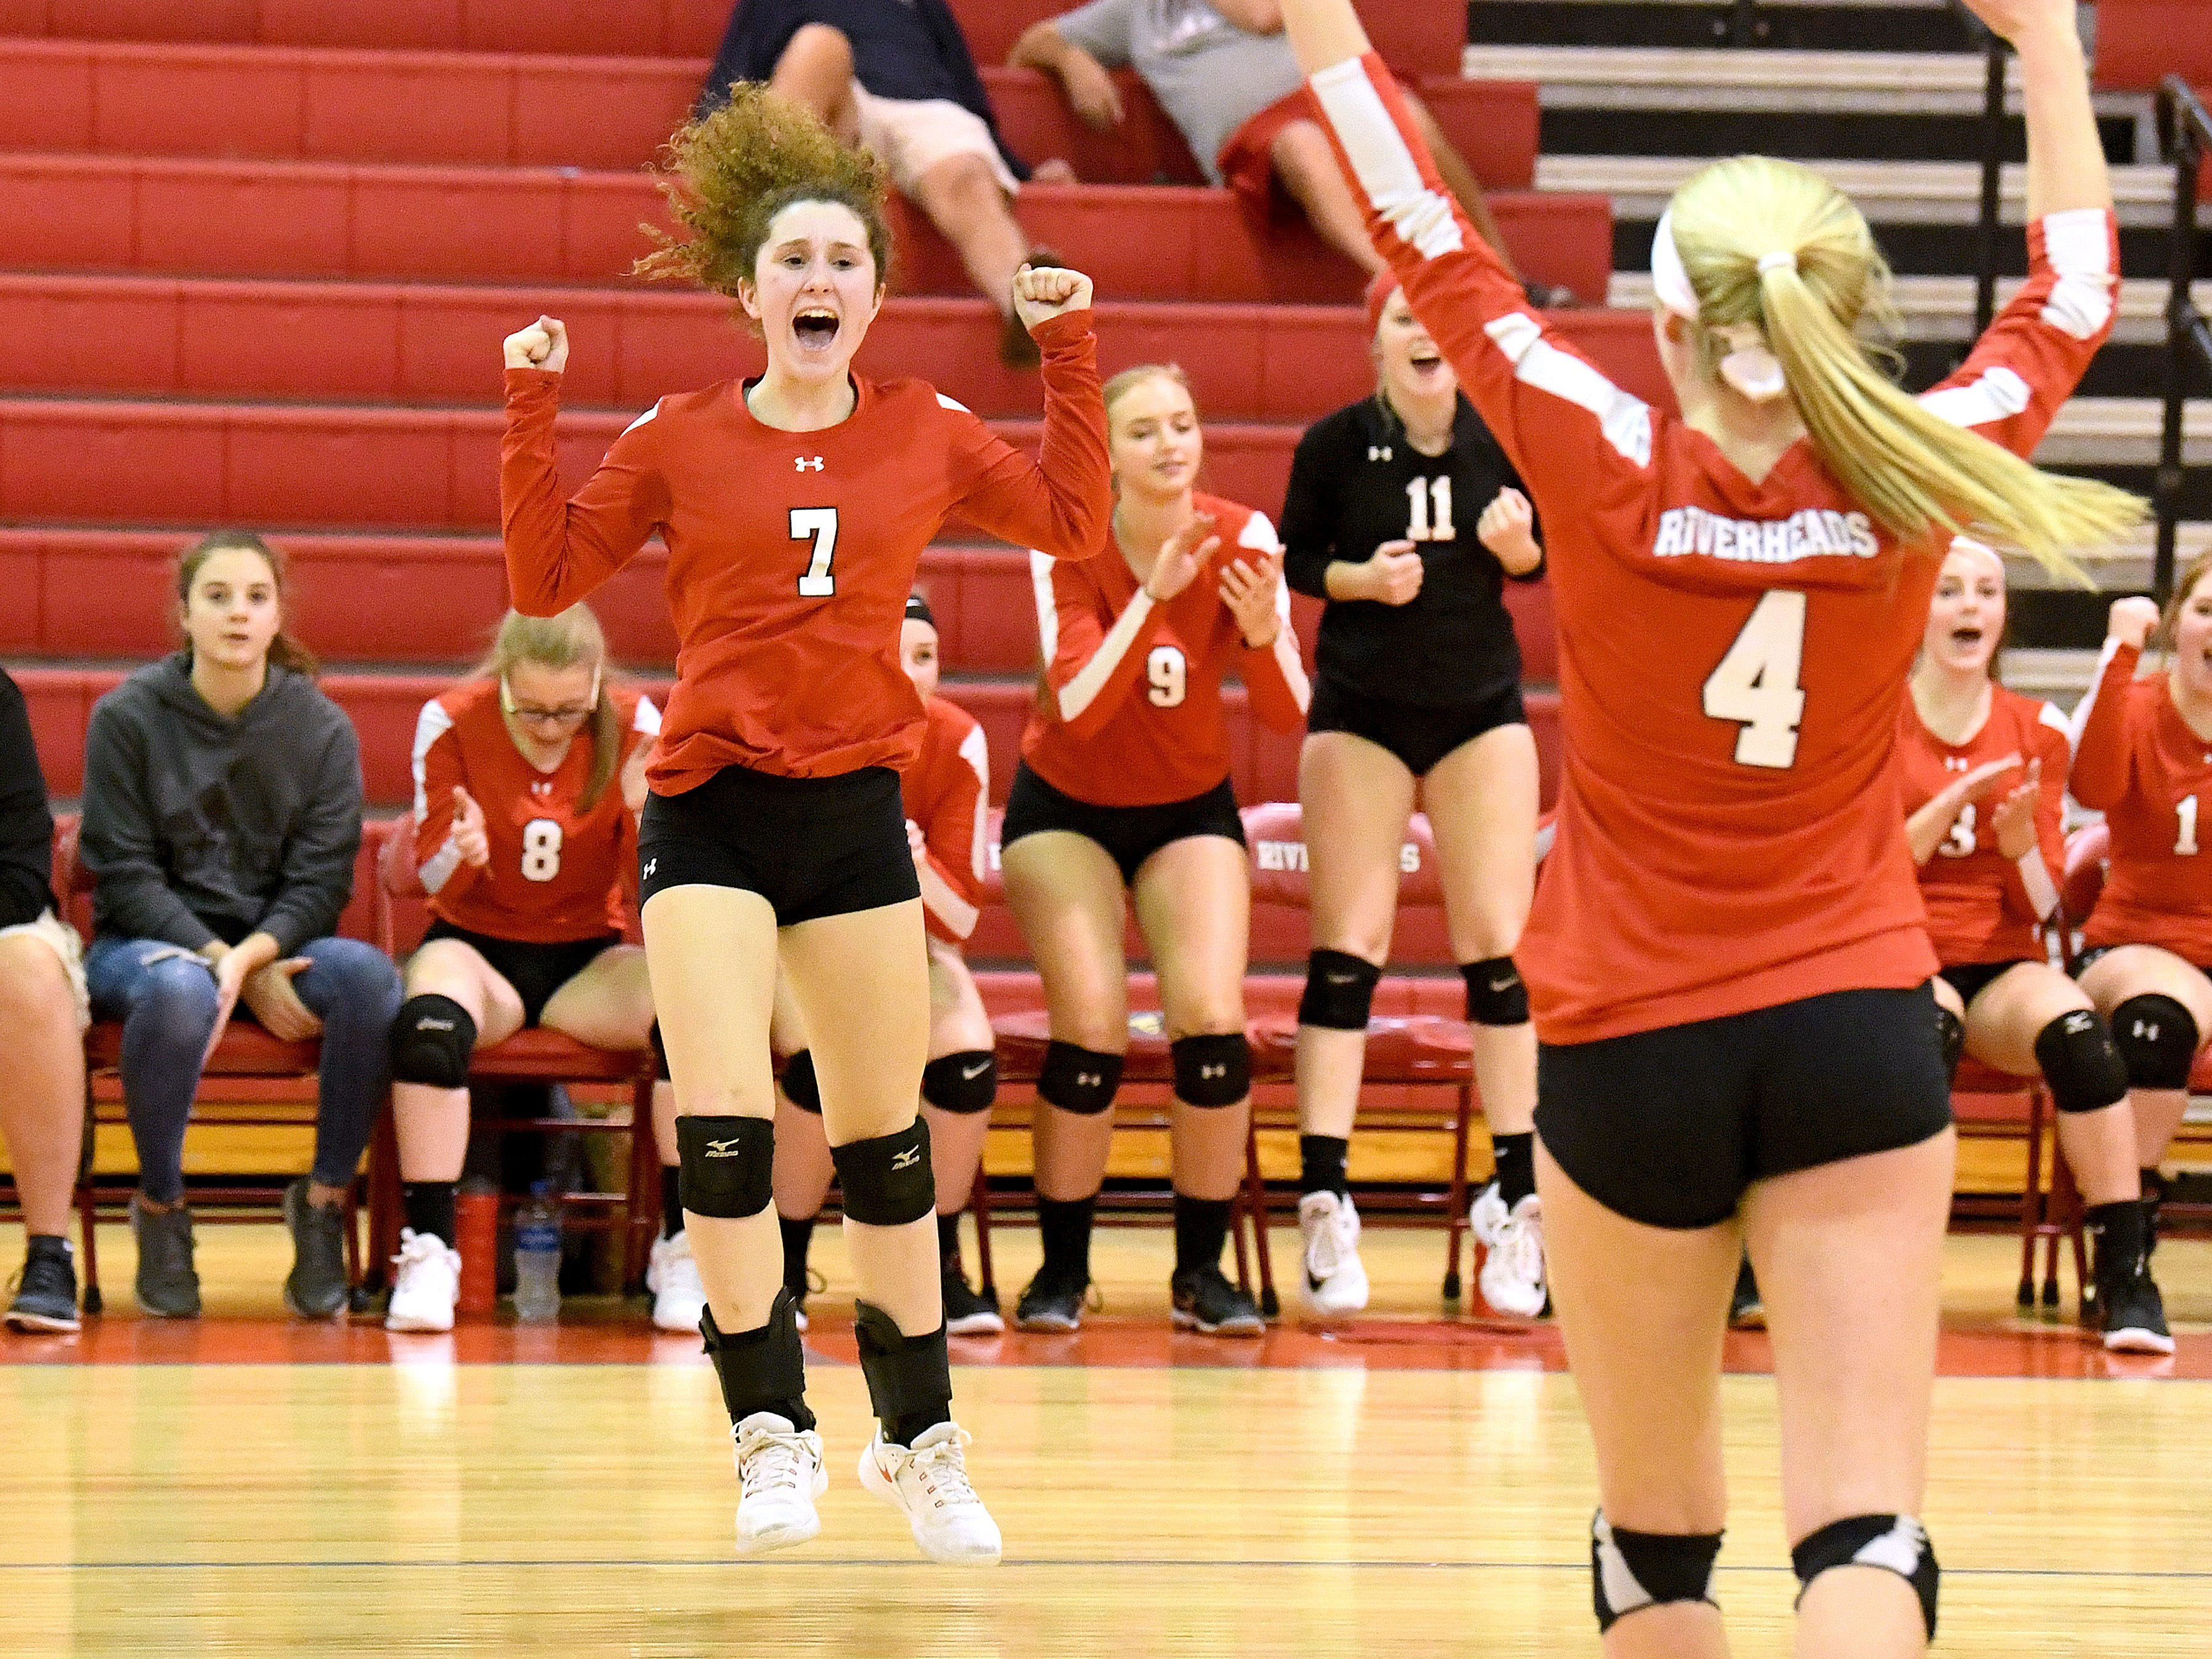 Riverheads' Gracie Fulton celebrates another point scored during the Region 1B volleyball championship played in Greenville on Wednesday, Nov. 7, 2018.